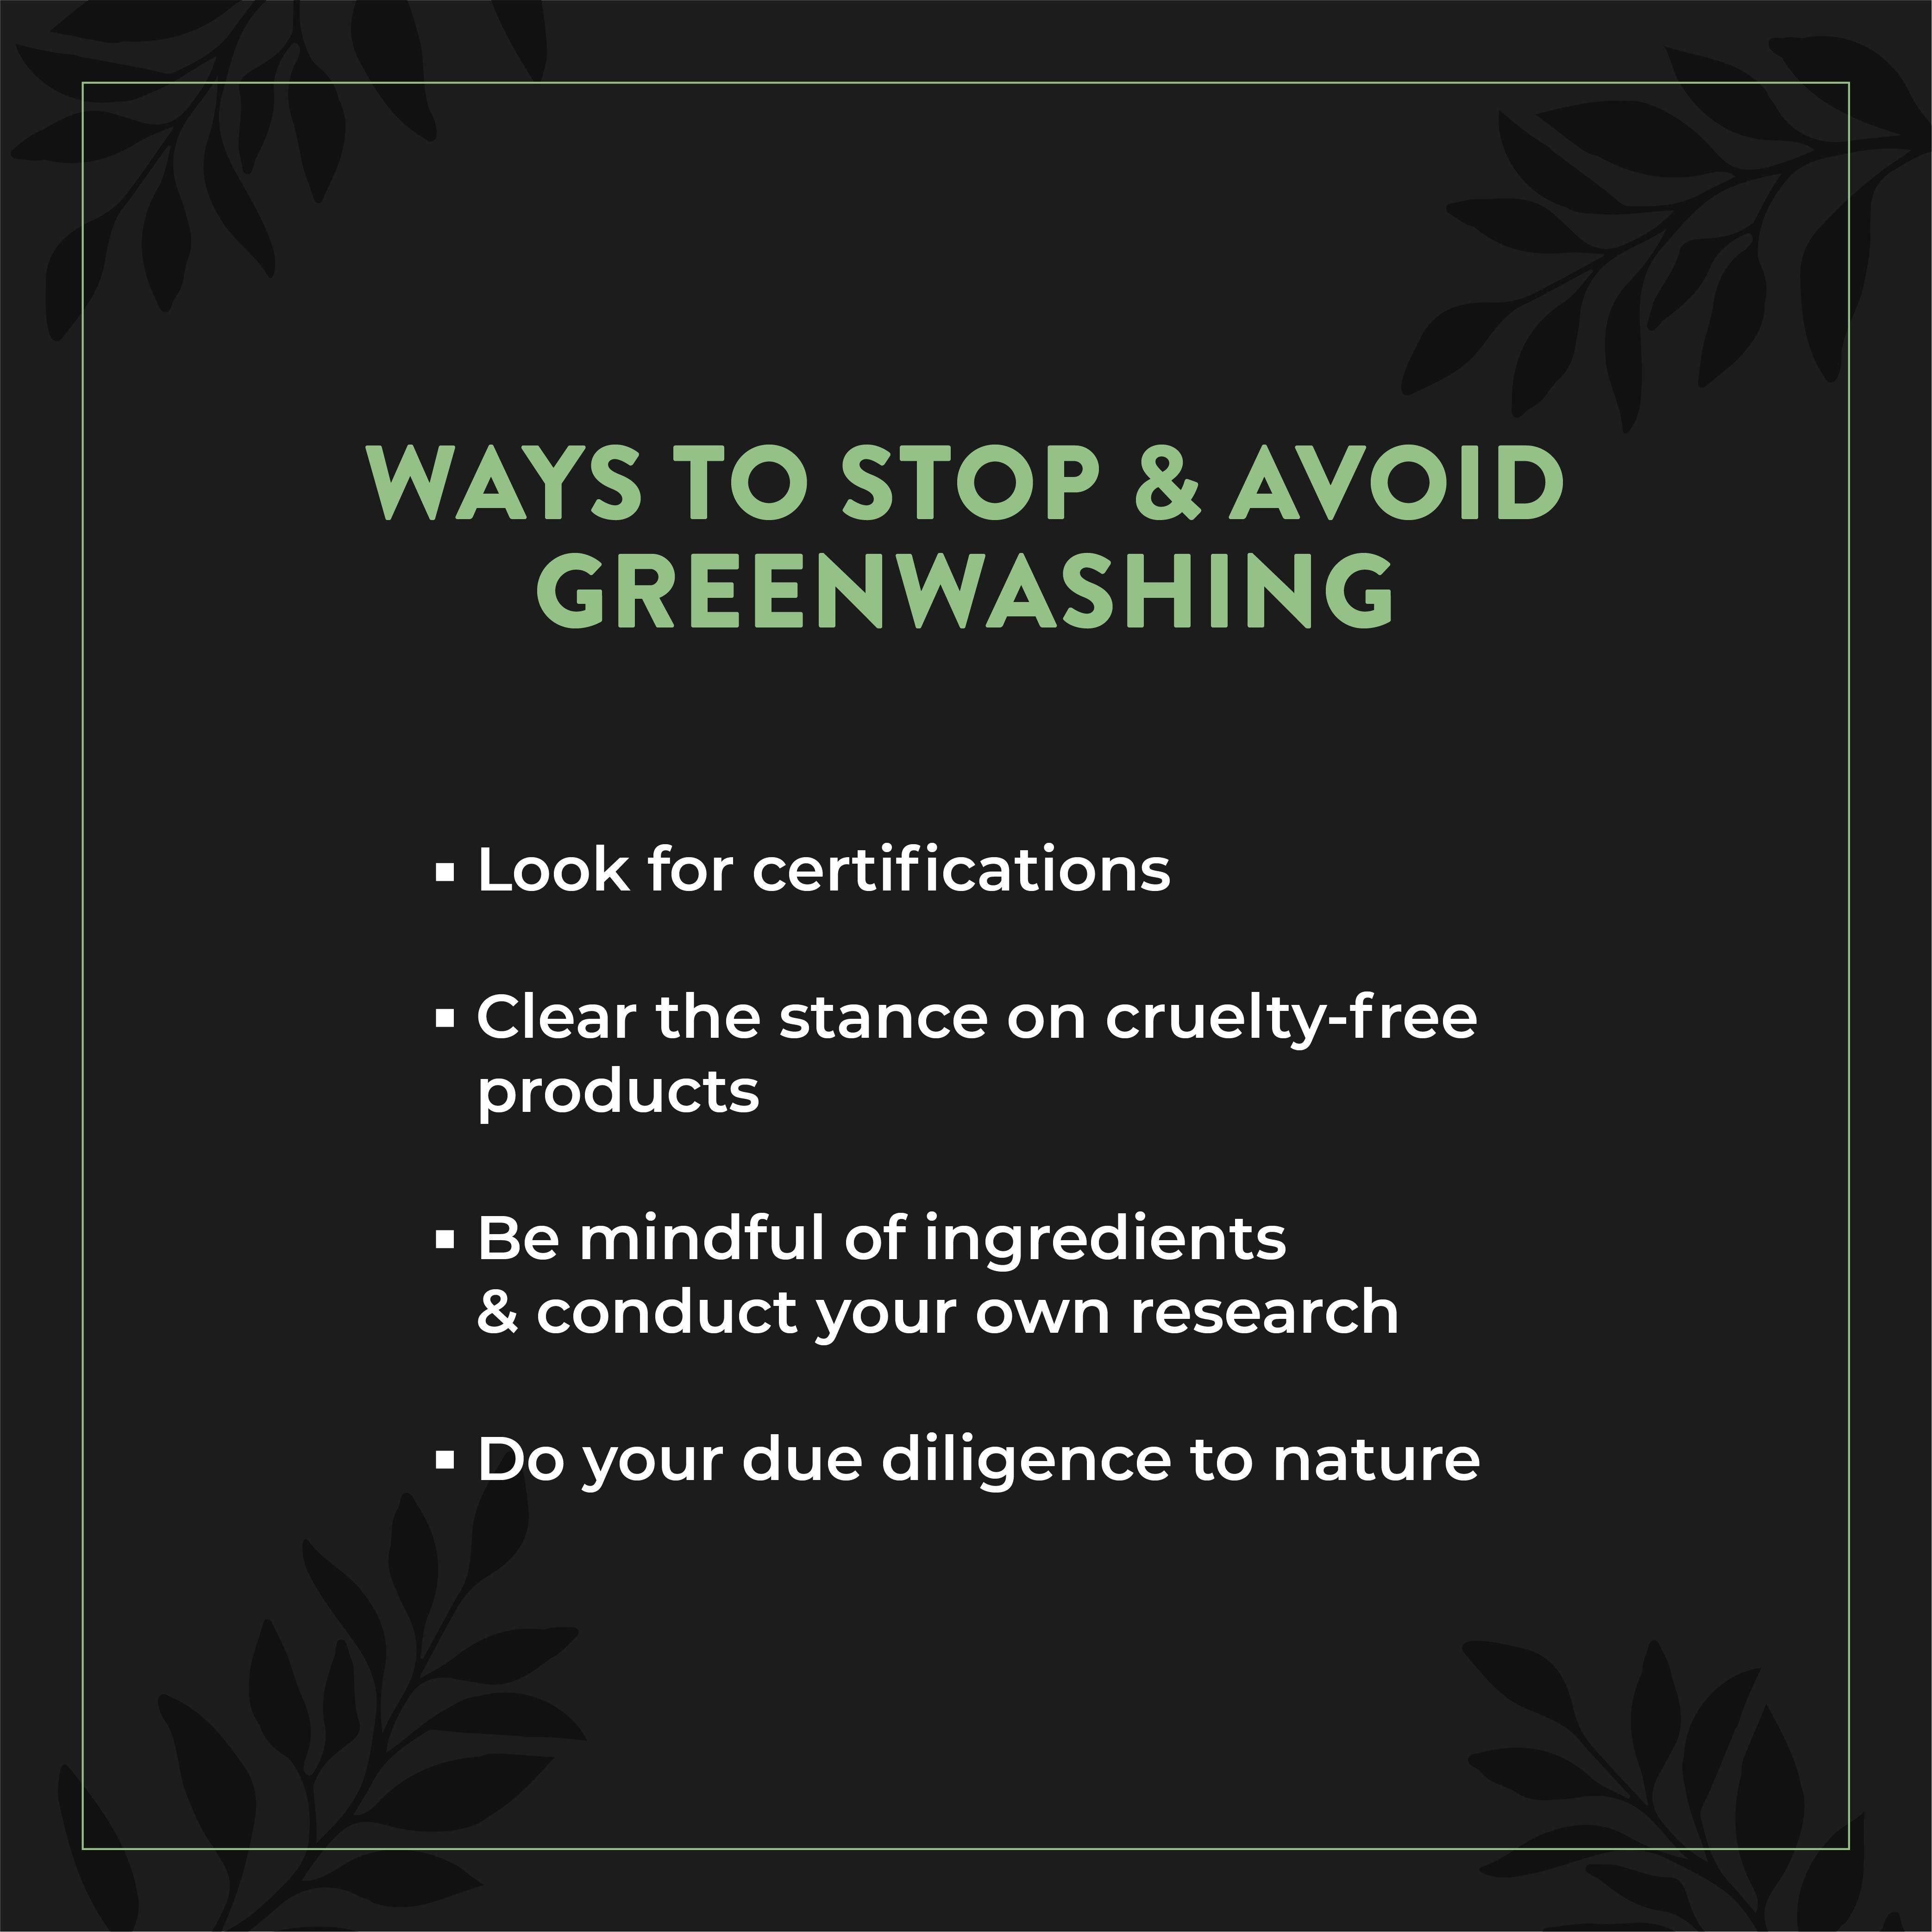 This is an image of how to stop greenwashing